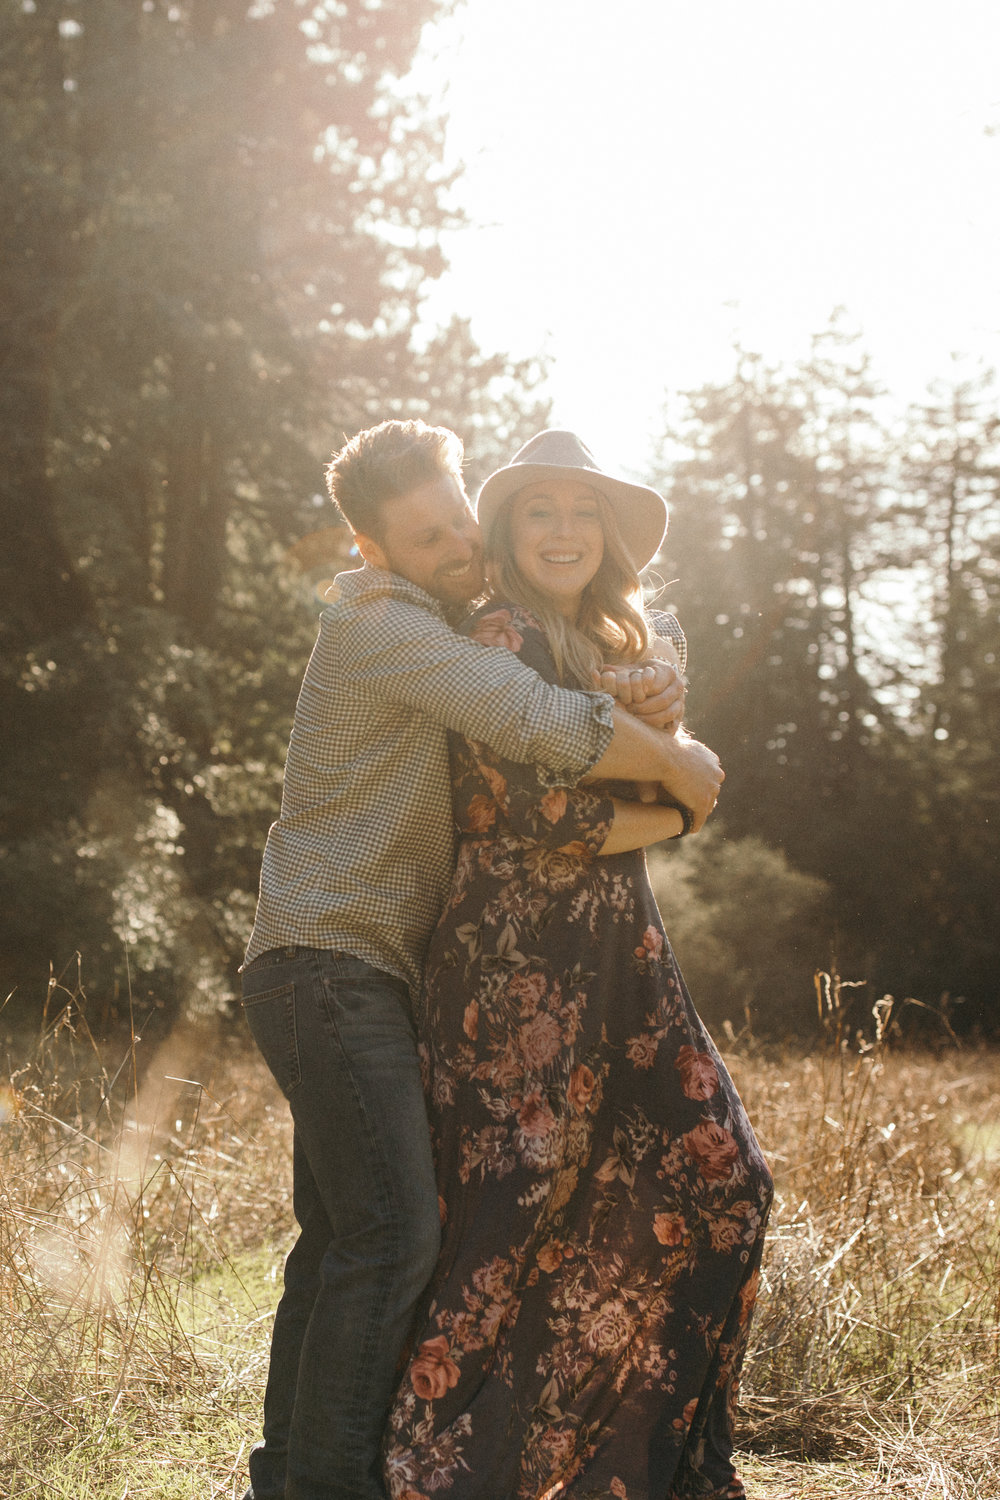 sanfrancisco-california-wedding-photographer-napa-california-engagements-west-marin-california-engagements-126.jpg